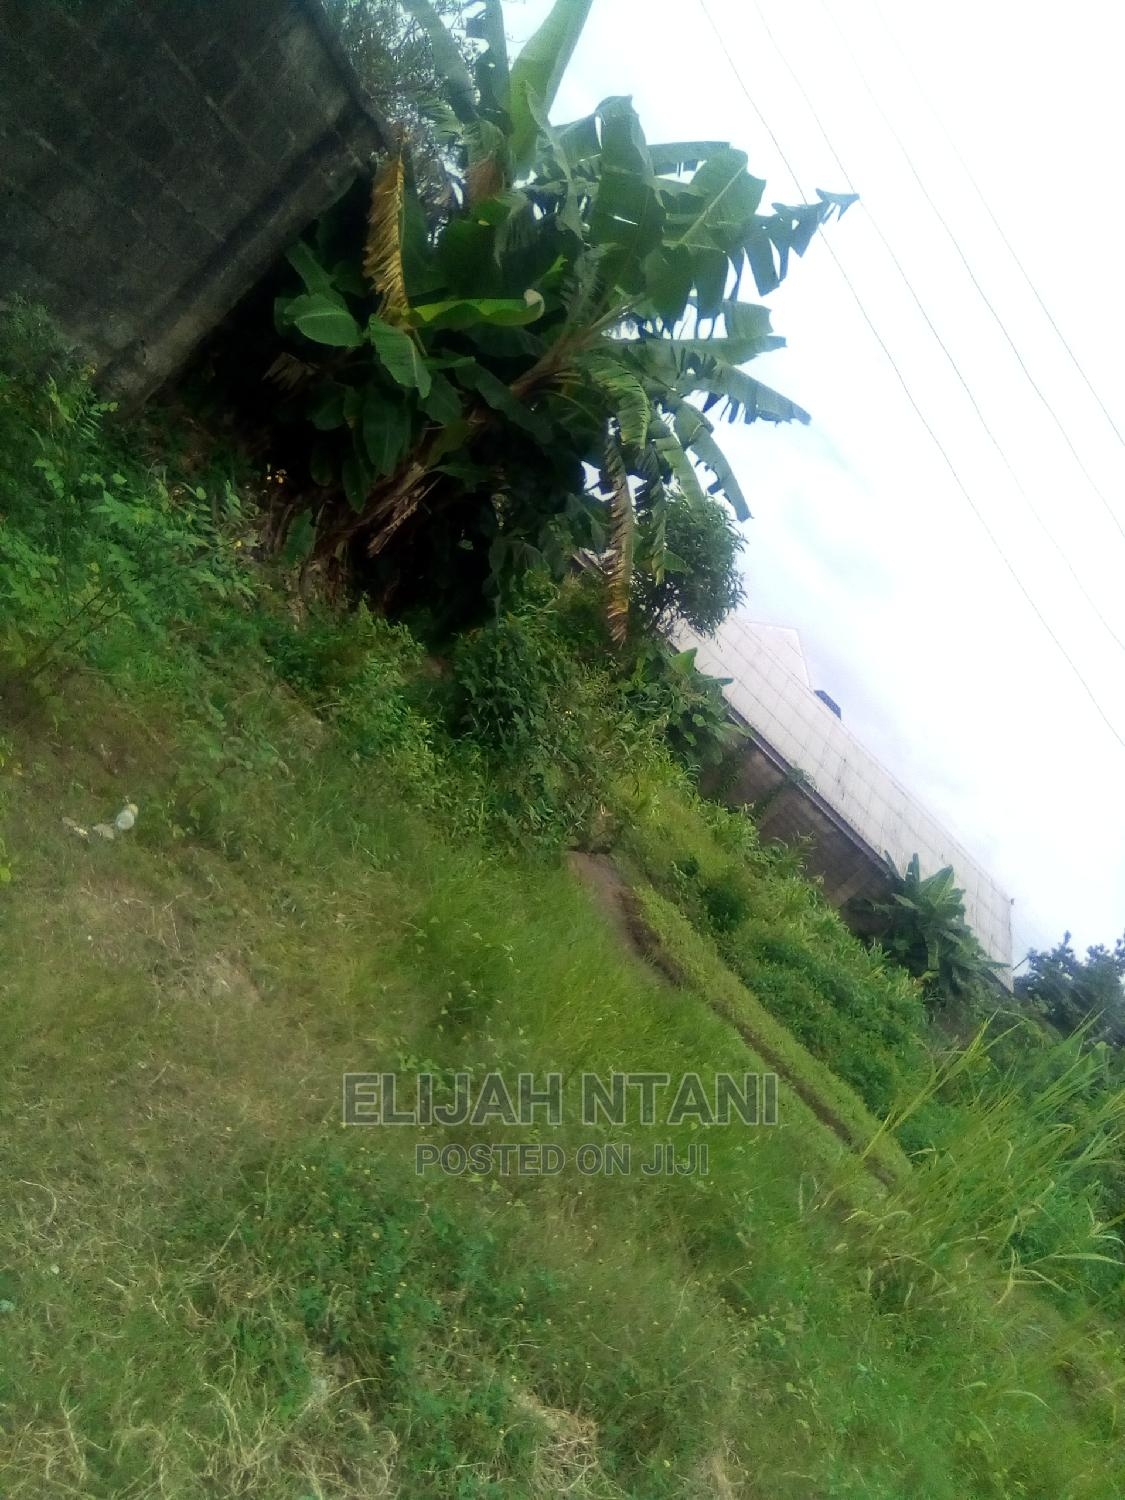 5bdrm Bungalow in Calabar for Sale